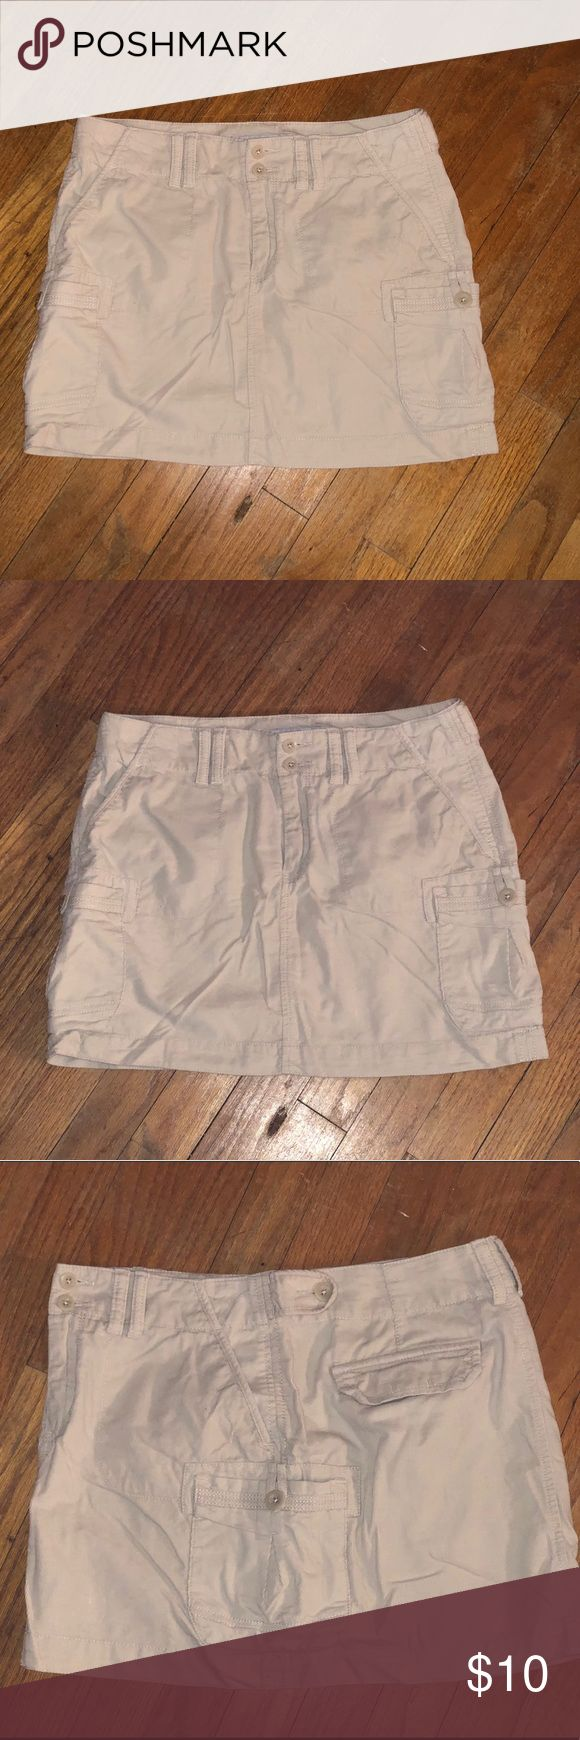 Old Navy Cargo Mini Skirts Old Navy mini skirts. 6 pockets. With loopholes for belt option. Khaki colored. Corduroy type. 100% cotton. Size 8. In excellent condition Old Navy Skirts Mini